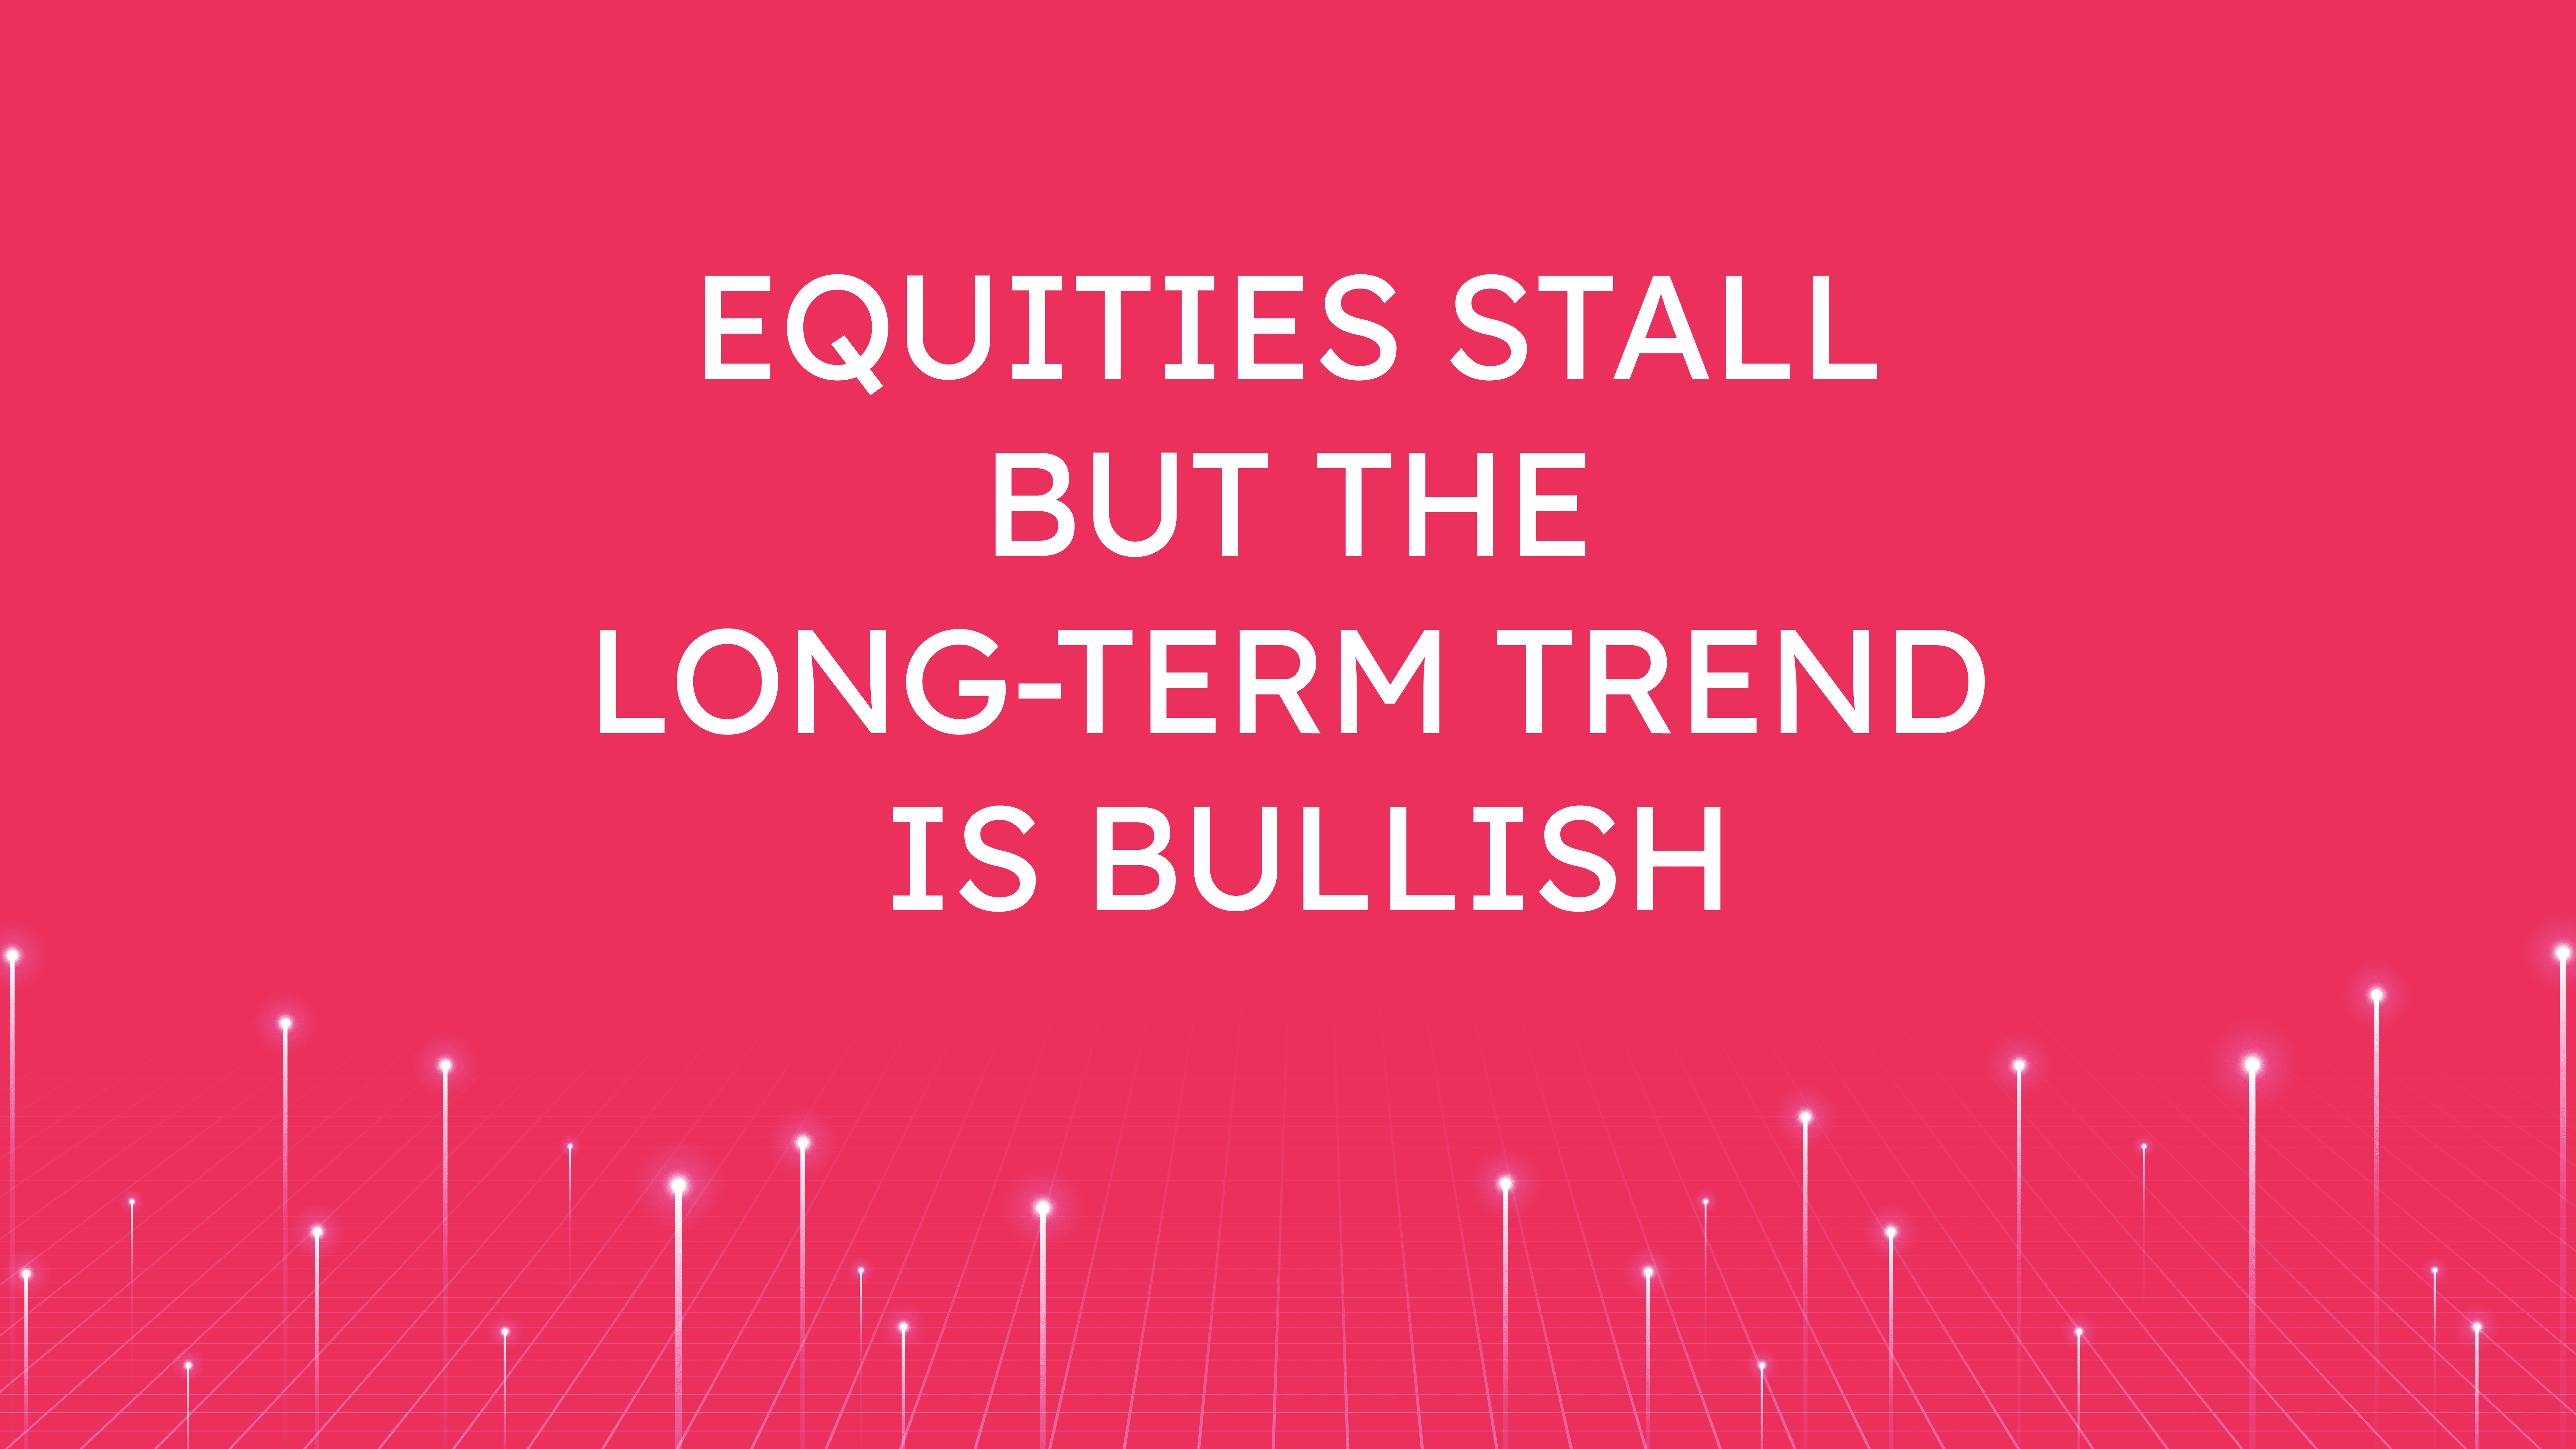 Equities Stall but the Long-Term Trend is Bullish